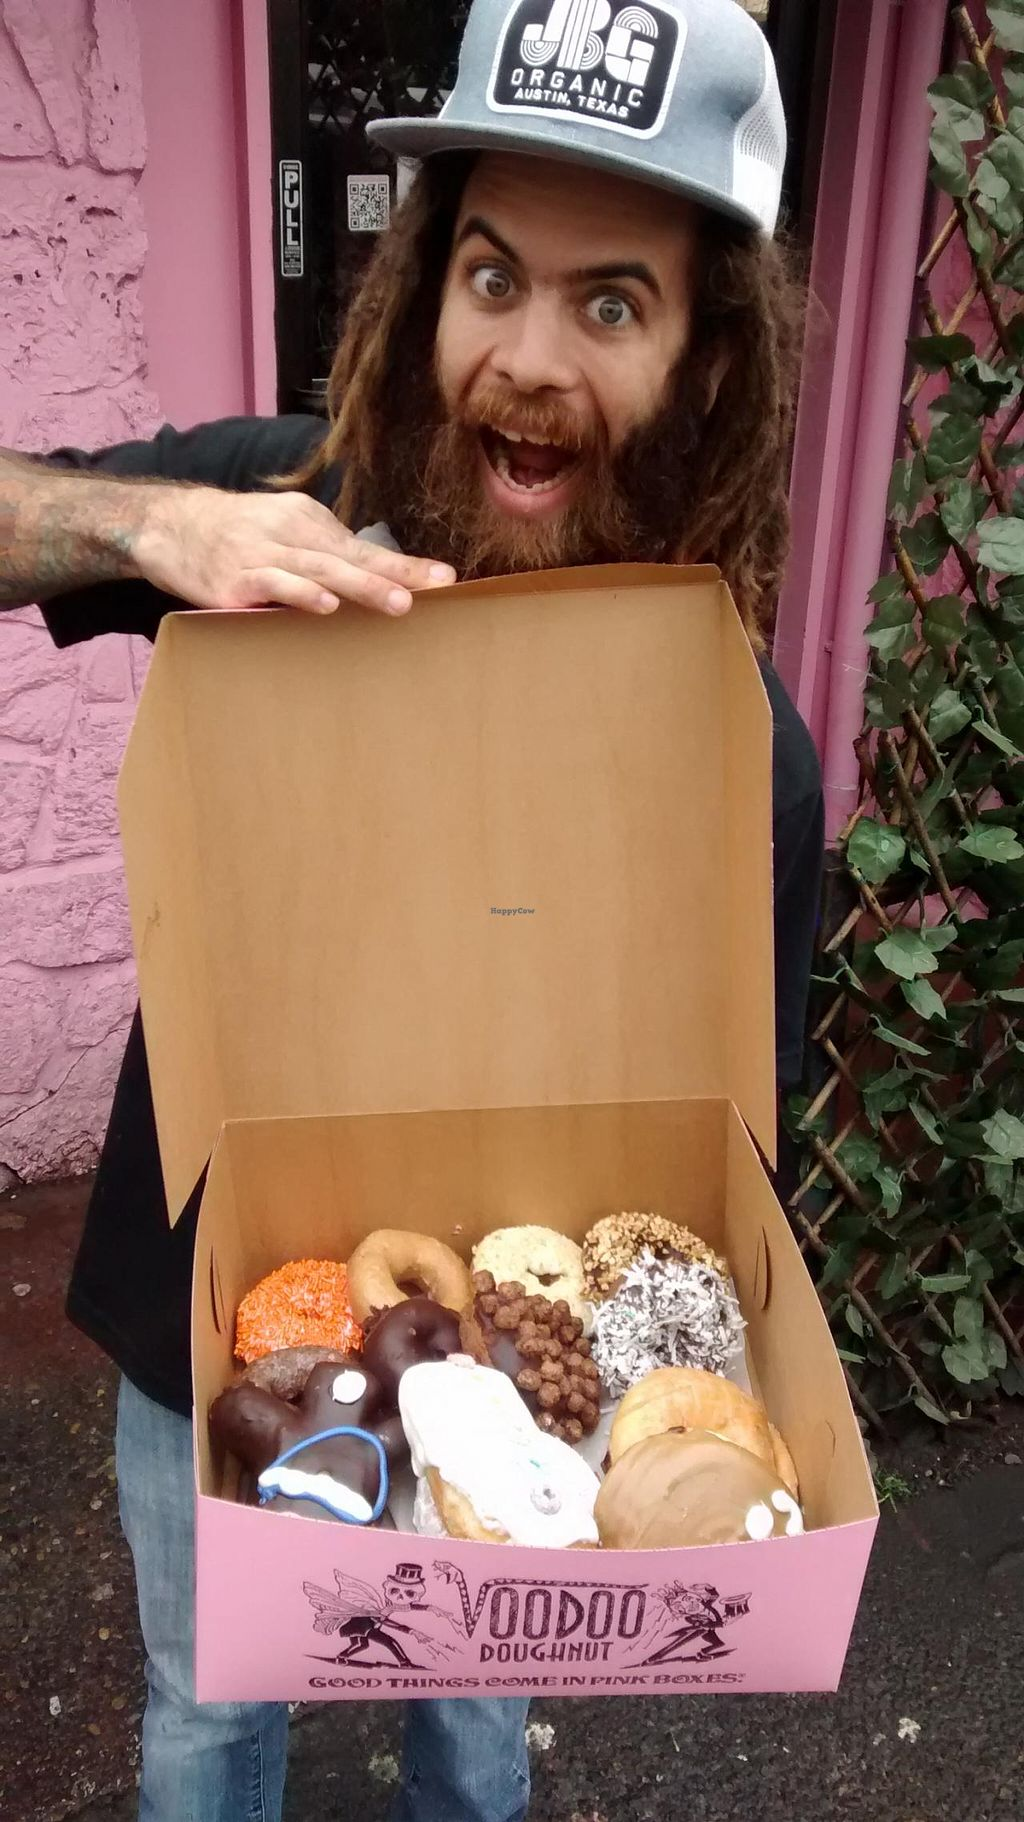 """Photo of Voodoo Doughnut Too  by <a href=""""/members/profile/lai.9292"""">lai.9292</a> <br/>vegan doughnuts for lovers <br/> March 16, 2015  - <a href='/contact/abuse/image/33115/95868'>Report</a>"""